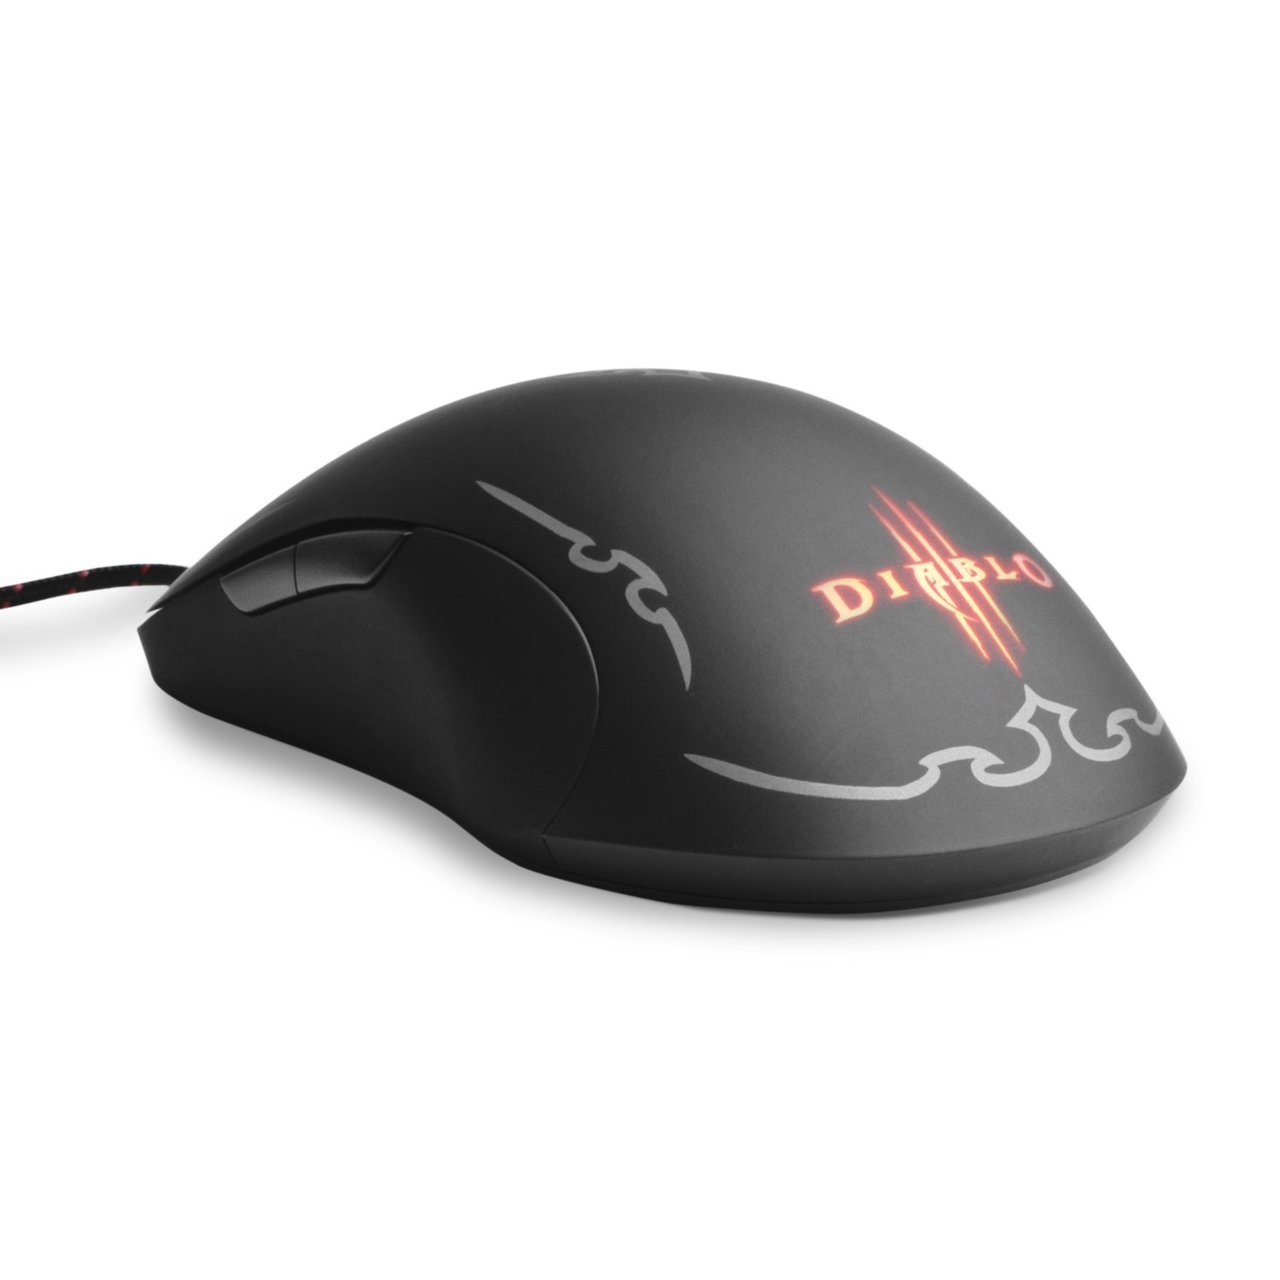 Diablo III Gaming Mouse at $69.99 A new generation of heroes must prepare against the evils that threaten the world of Sanctuary. Arm yourself with a weapon: the SteelSeries Diablo III Gaming Mouse, co-designed by the creators of Diablo III, for your battle against the rising powers of the Burning Hells.